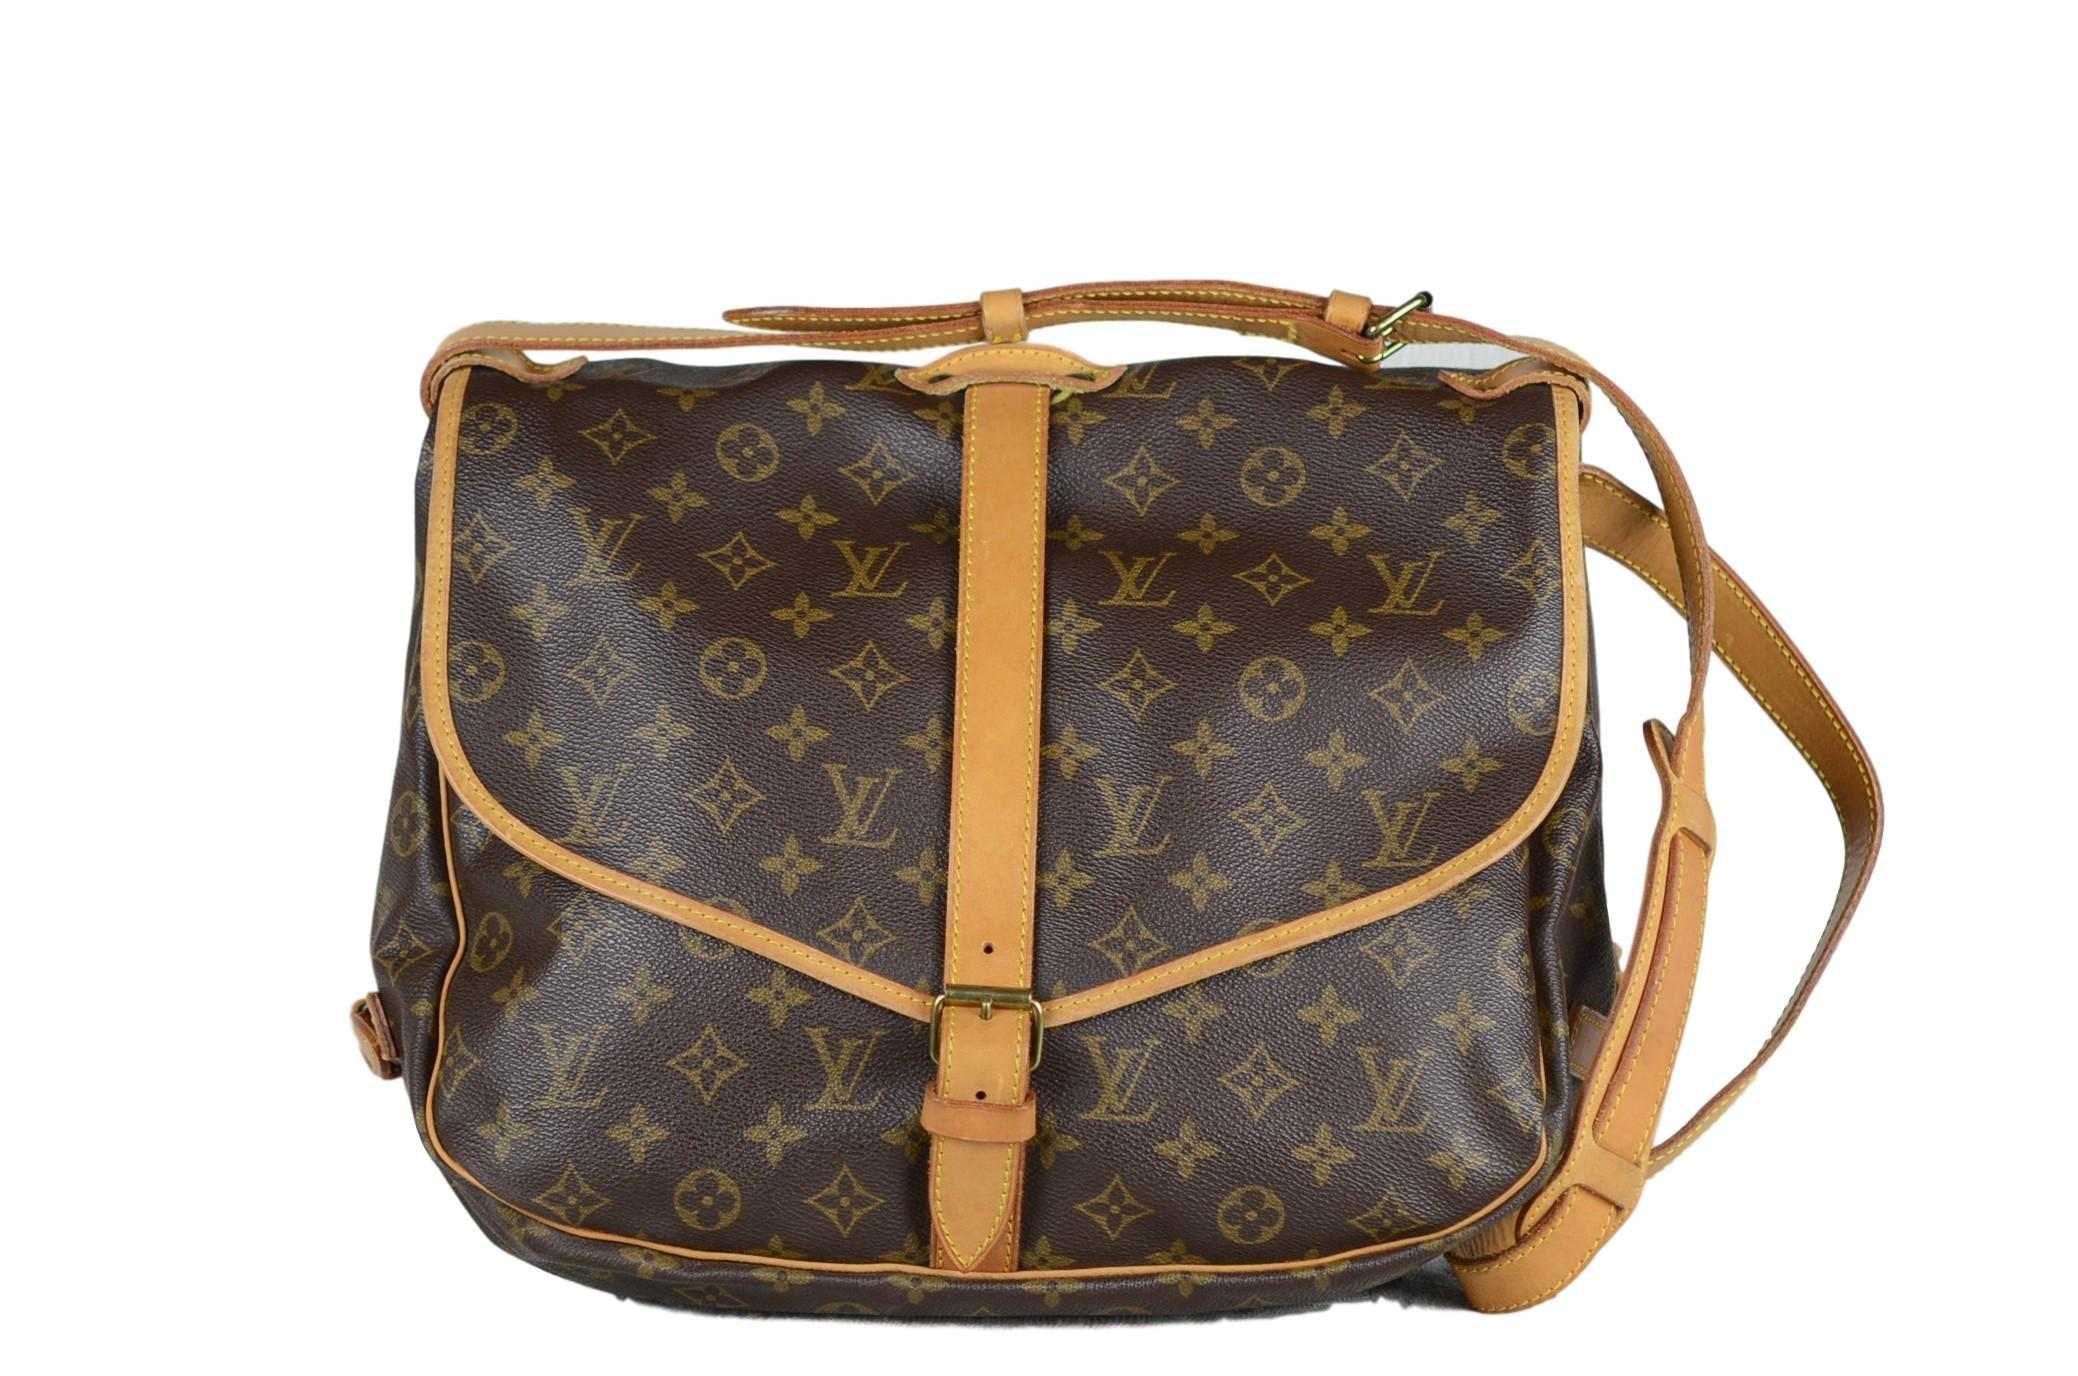 louis vuitton designer bags. louis vuitton lv leather saumur cross body bag louis vuitton designer bags u